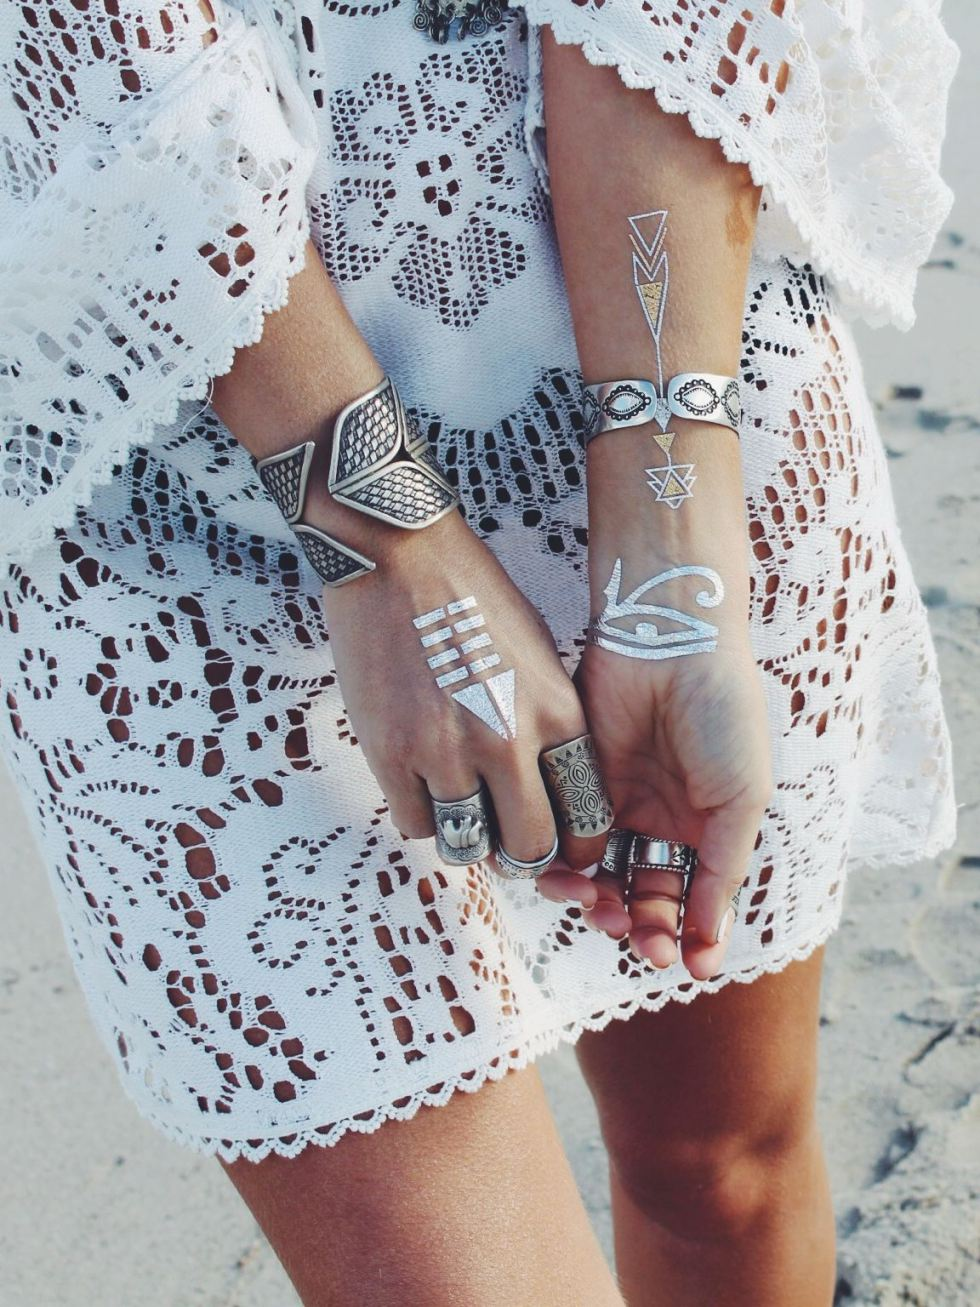 Lace Lovin | GypsyLovinLight